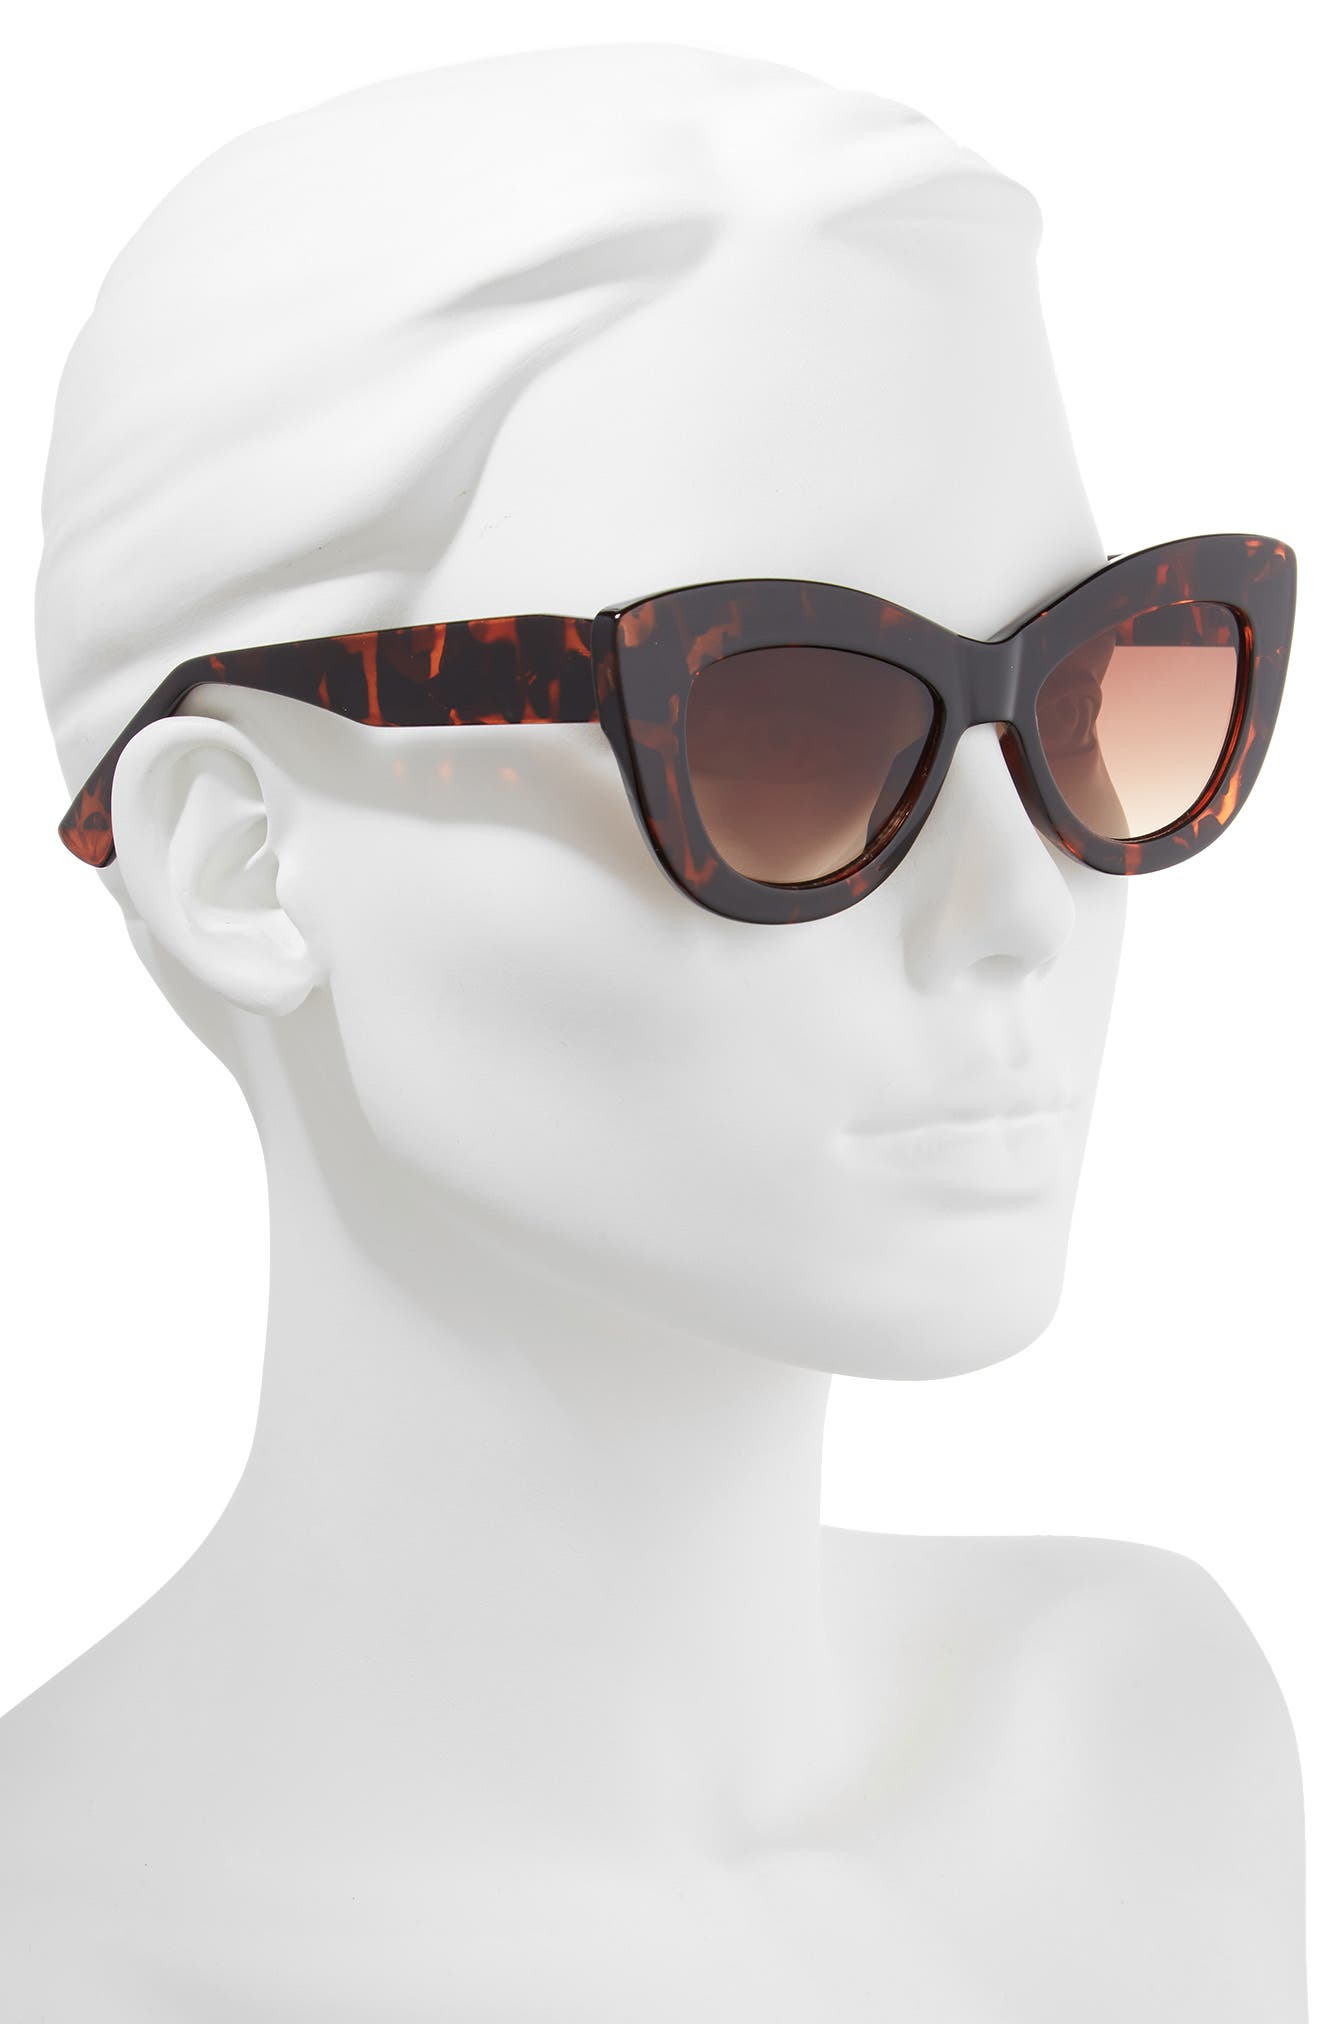 65mm Cat Eye Sunglasses,                             Alternate thumbnail 2, color,                             Tort/ Brown